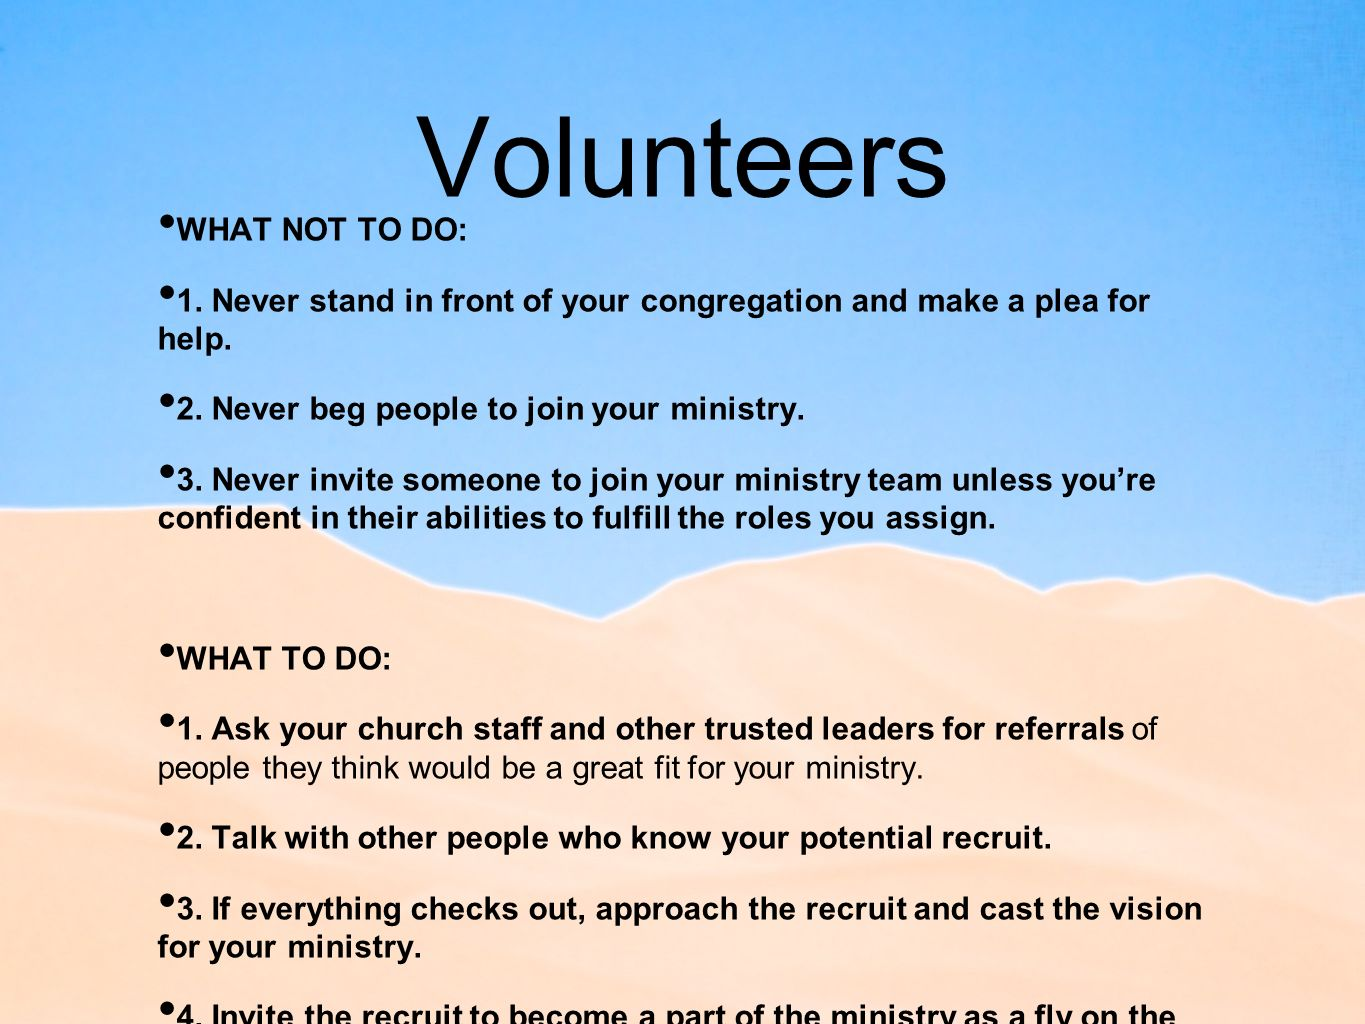 Volunteers WHAT NOT TO DO: 1. Never stand in front of your congregation and make a plea for help.